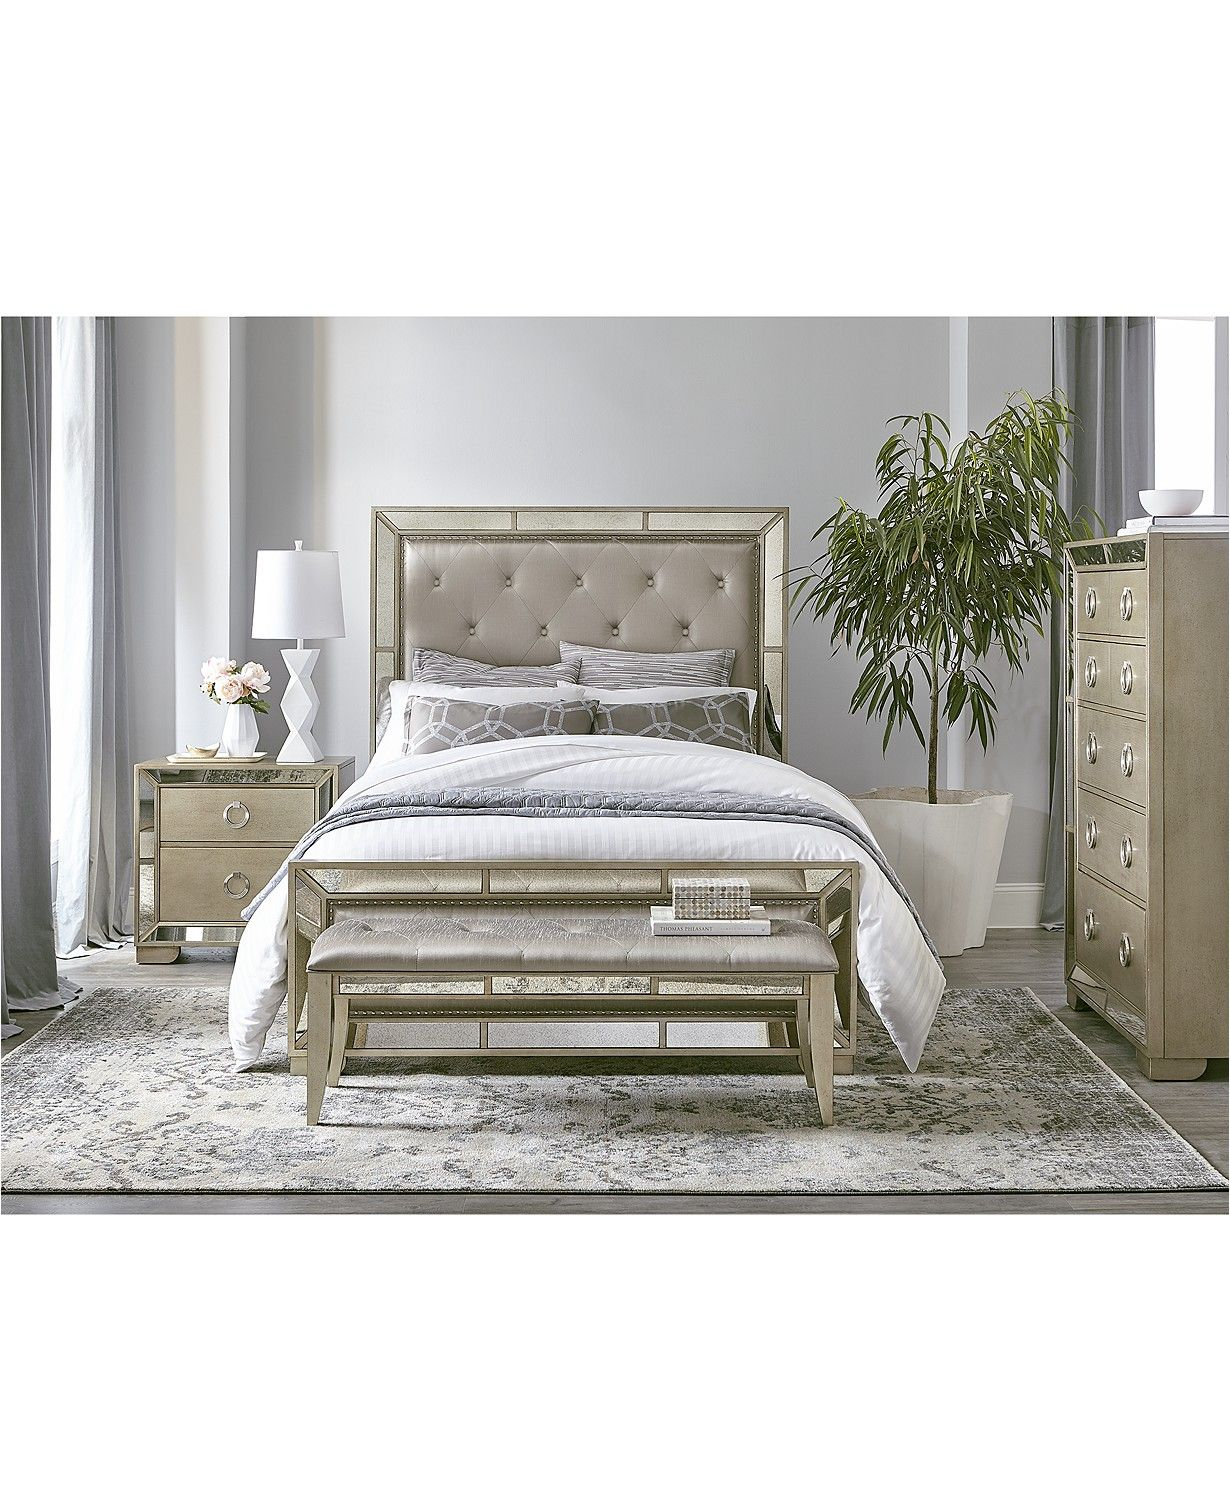 Magnified Main Image Mirrored Bedroom Furniture Bedroom Collections Furniture Bedroom Furniture Sets